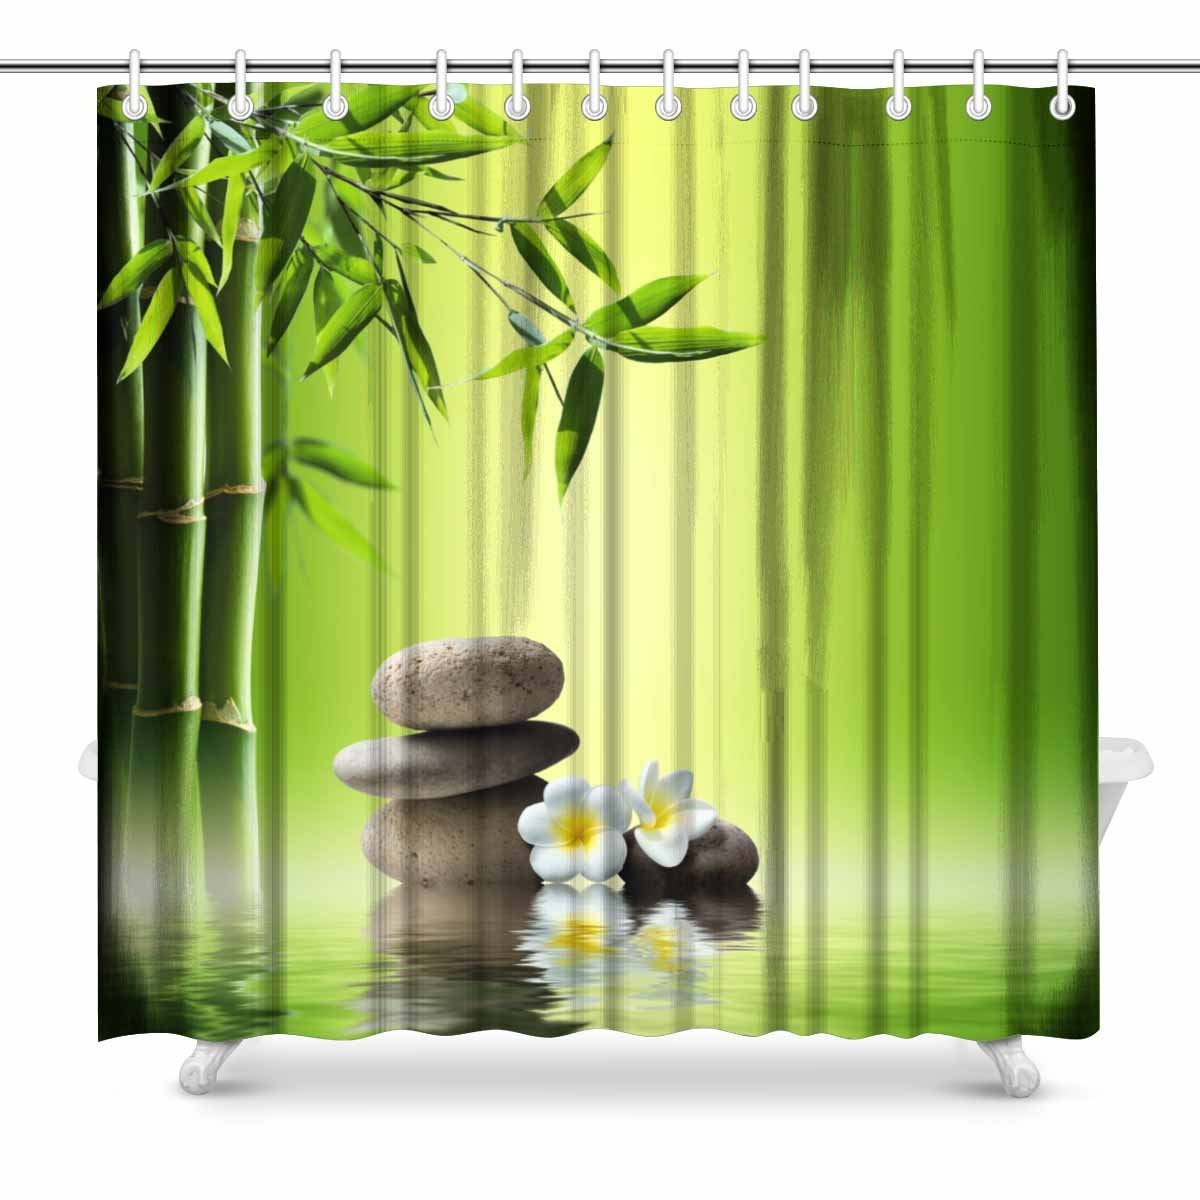 Shower Curtains 72x72 Polyester Waterproof Bamboo Spa Stone